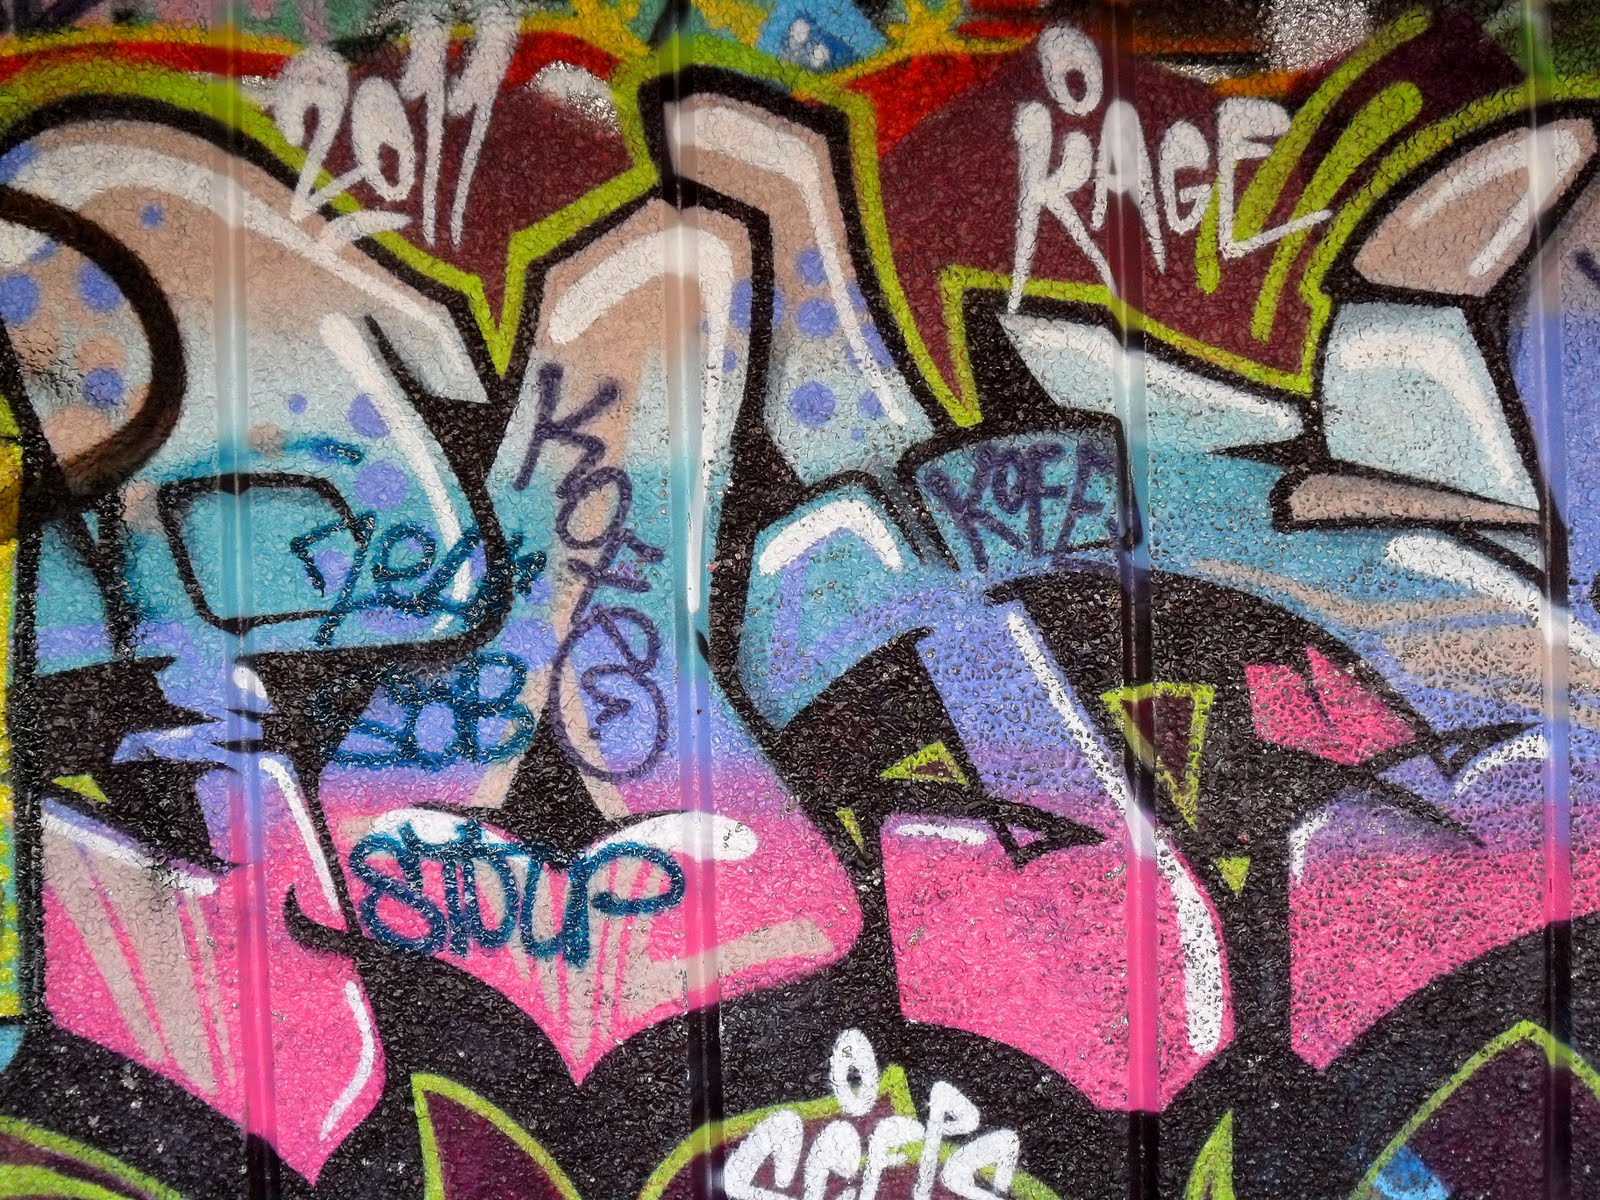 vandalism graffiti artist Free essay: graffiti: art or vandalism graffiti is a true art with different meanings that involves many styles and risks that can damage artists physically.